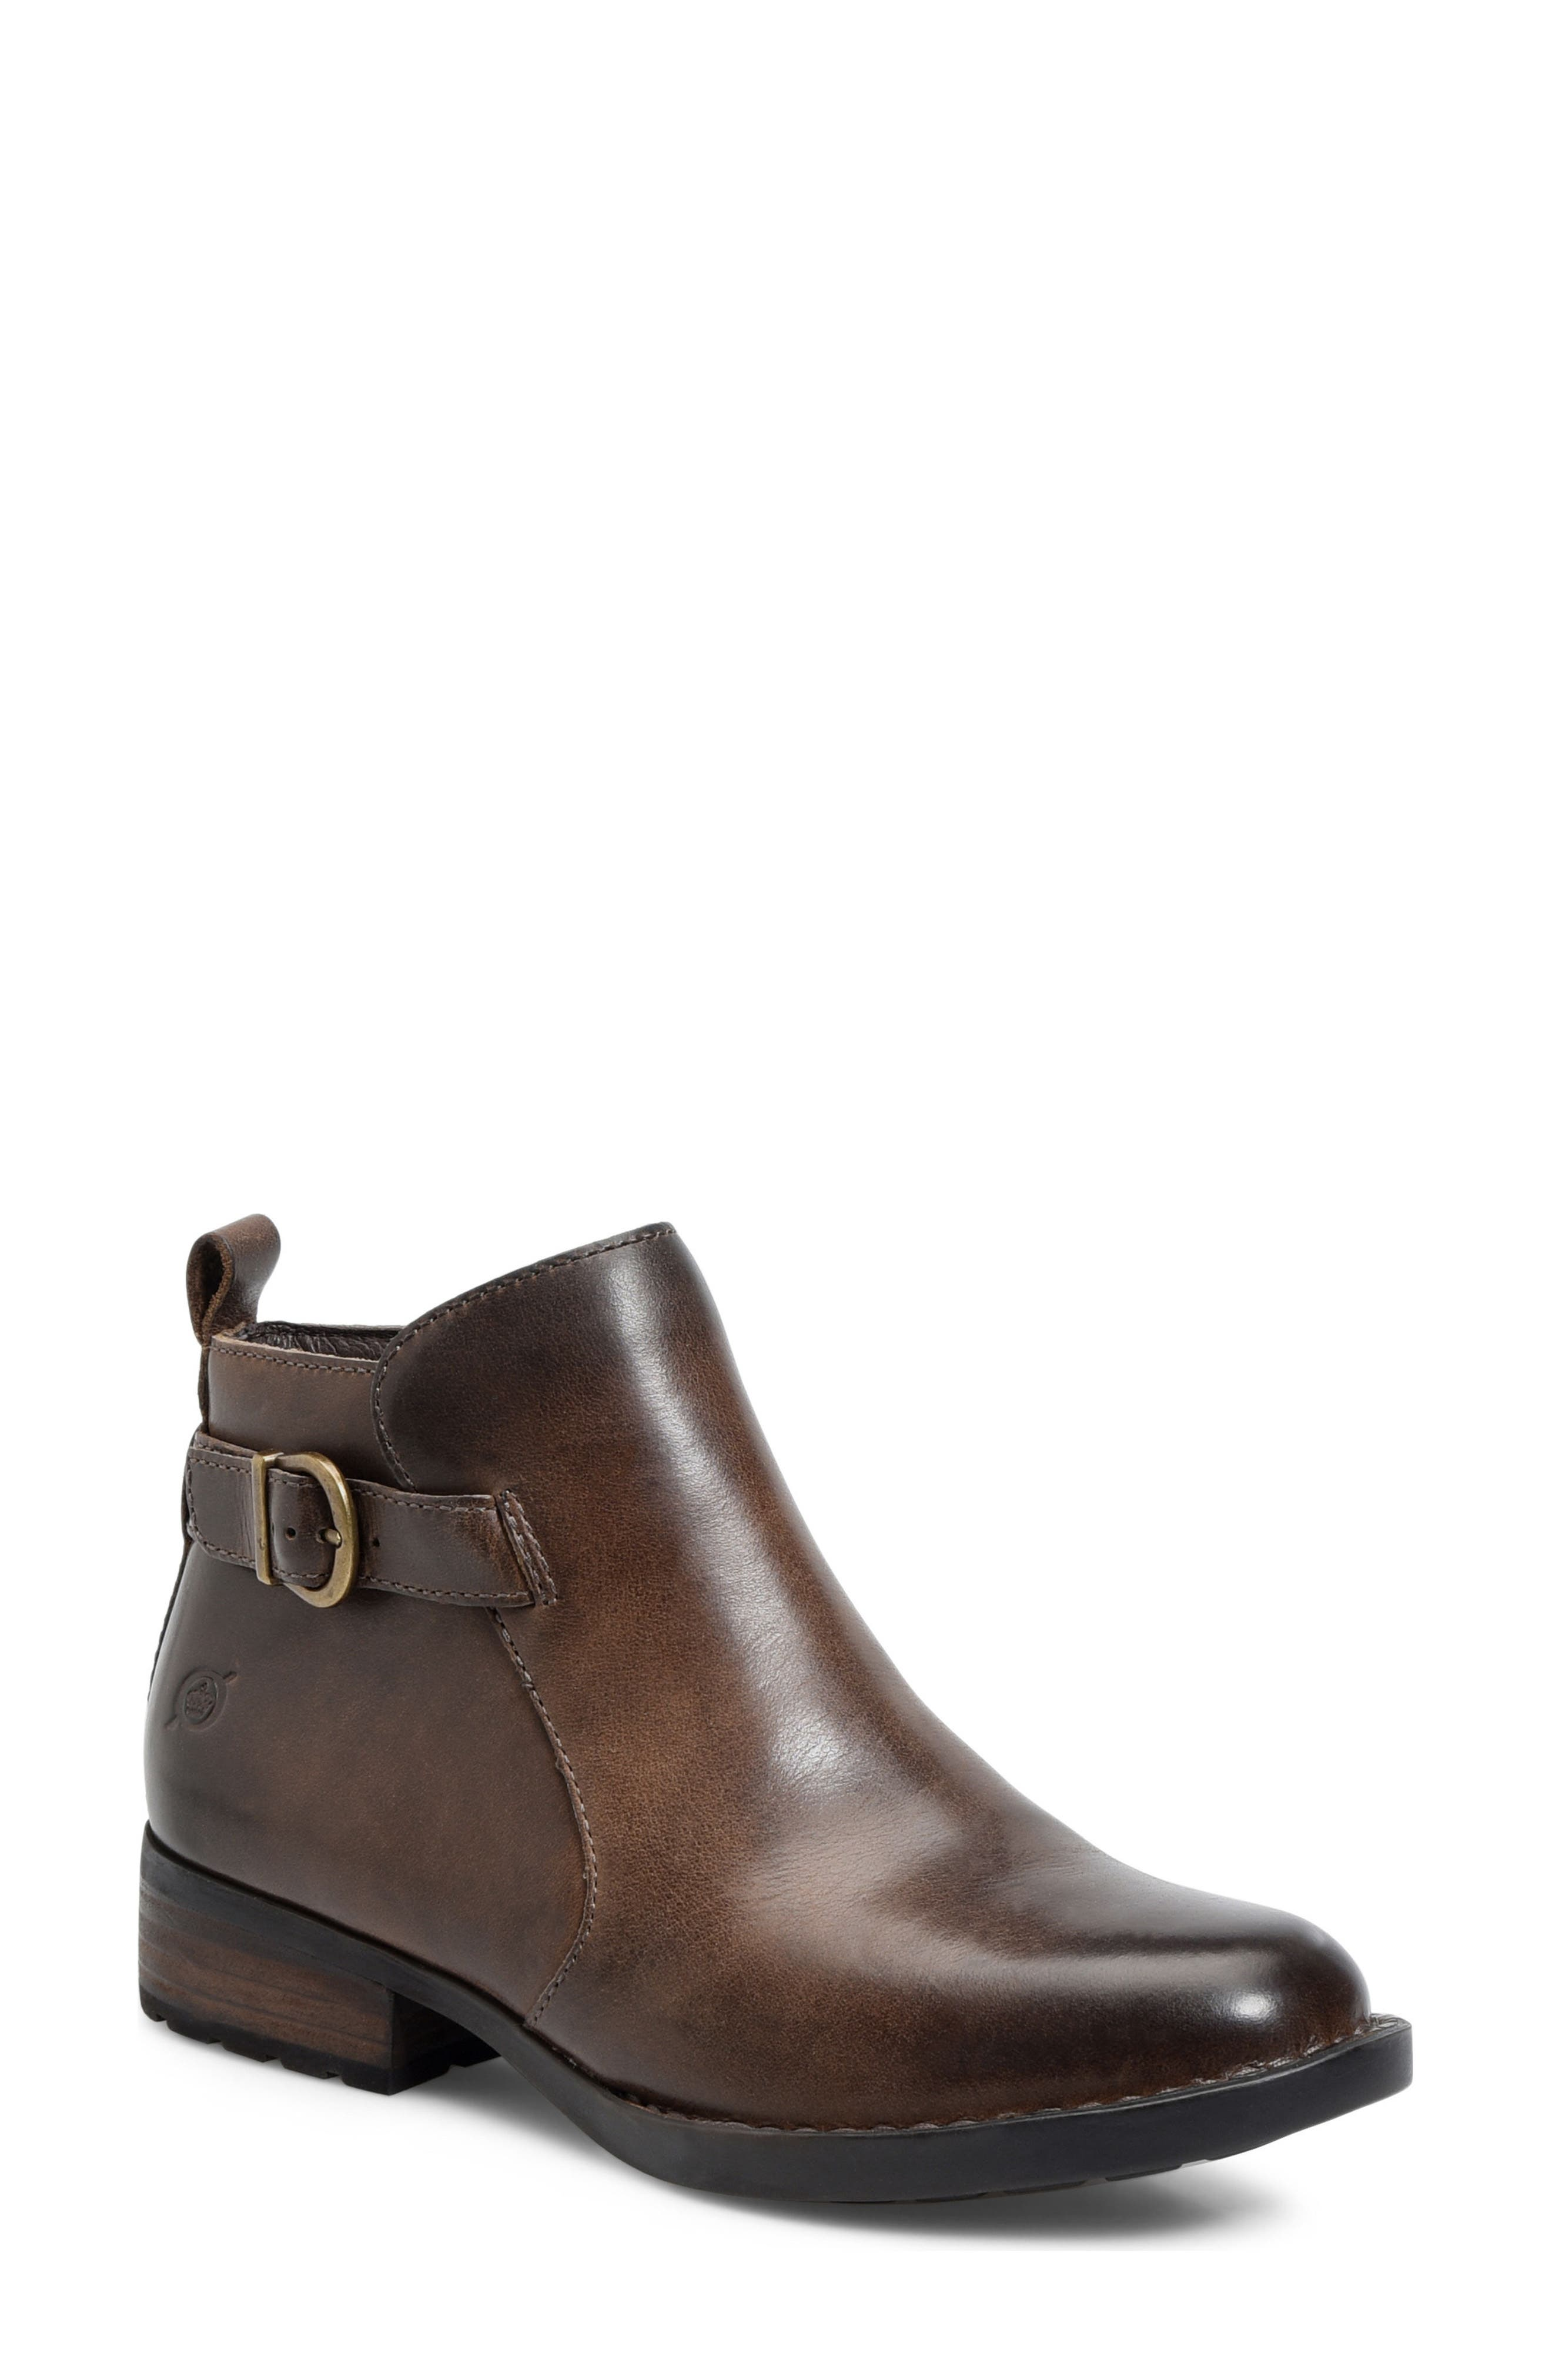 Timms Bootie,                         Main,                         color, Brown Leather